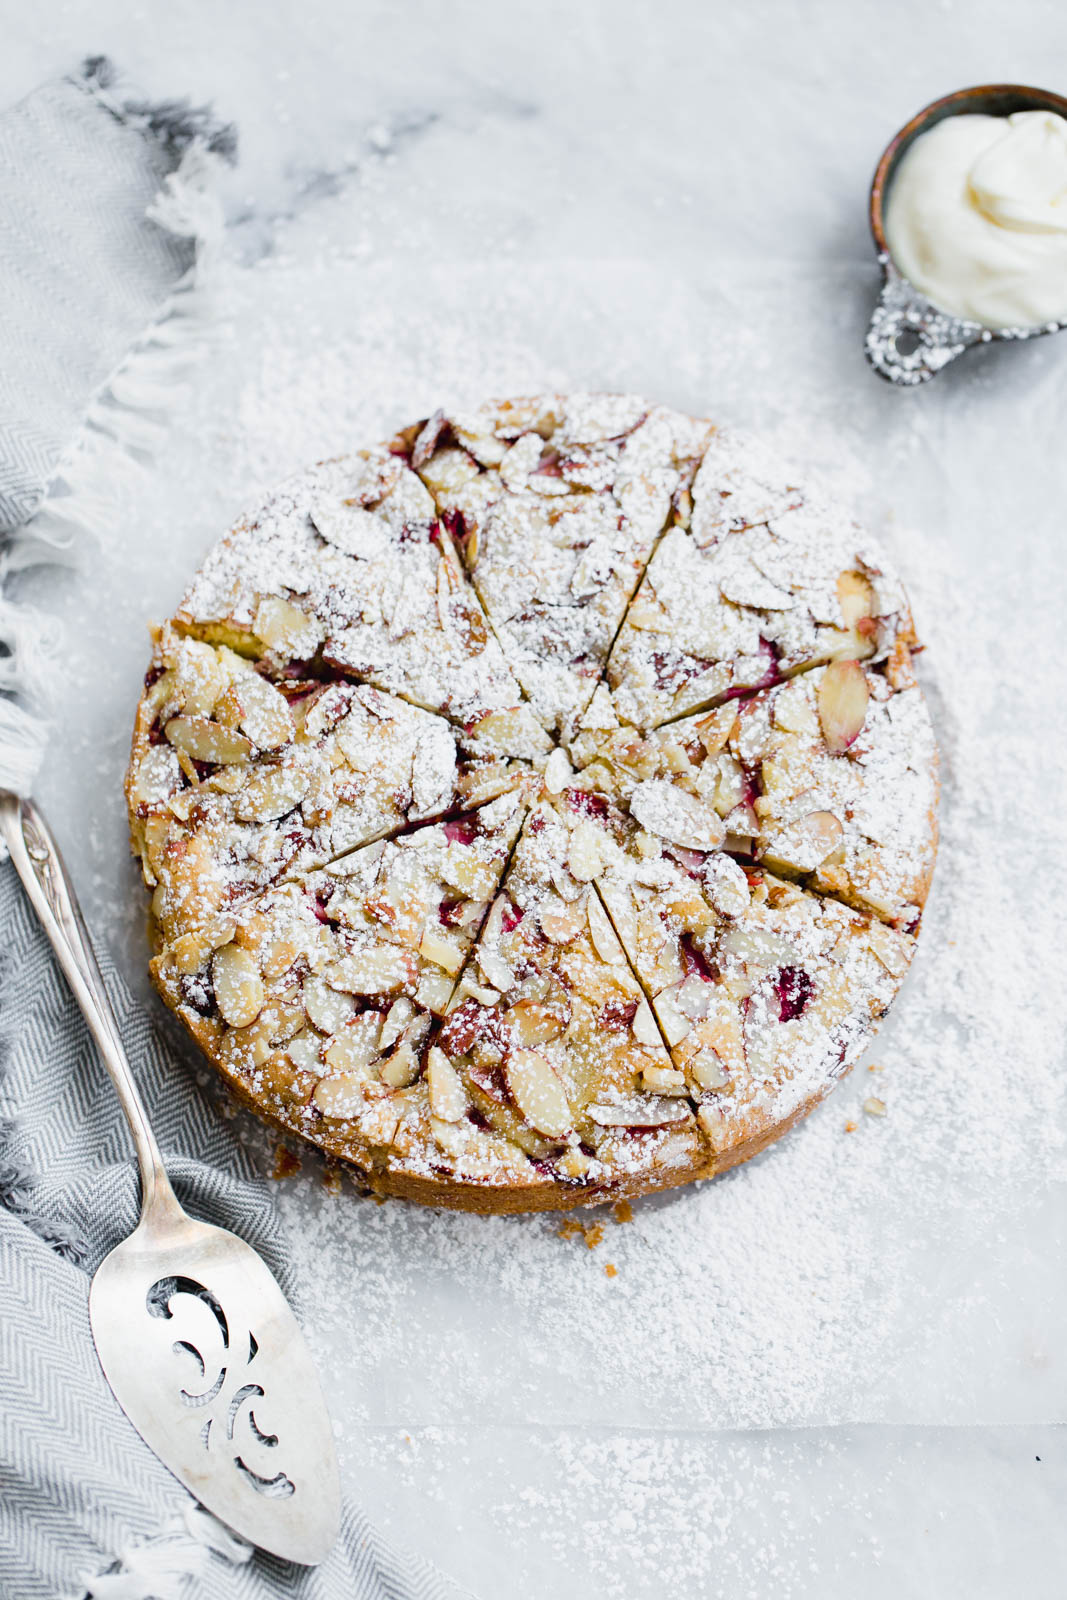 strawberry almond cake topped with slivered almonds and powdered sugar